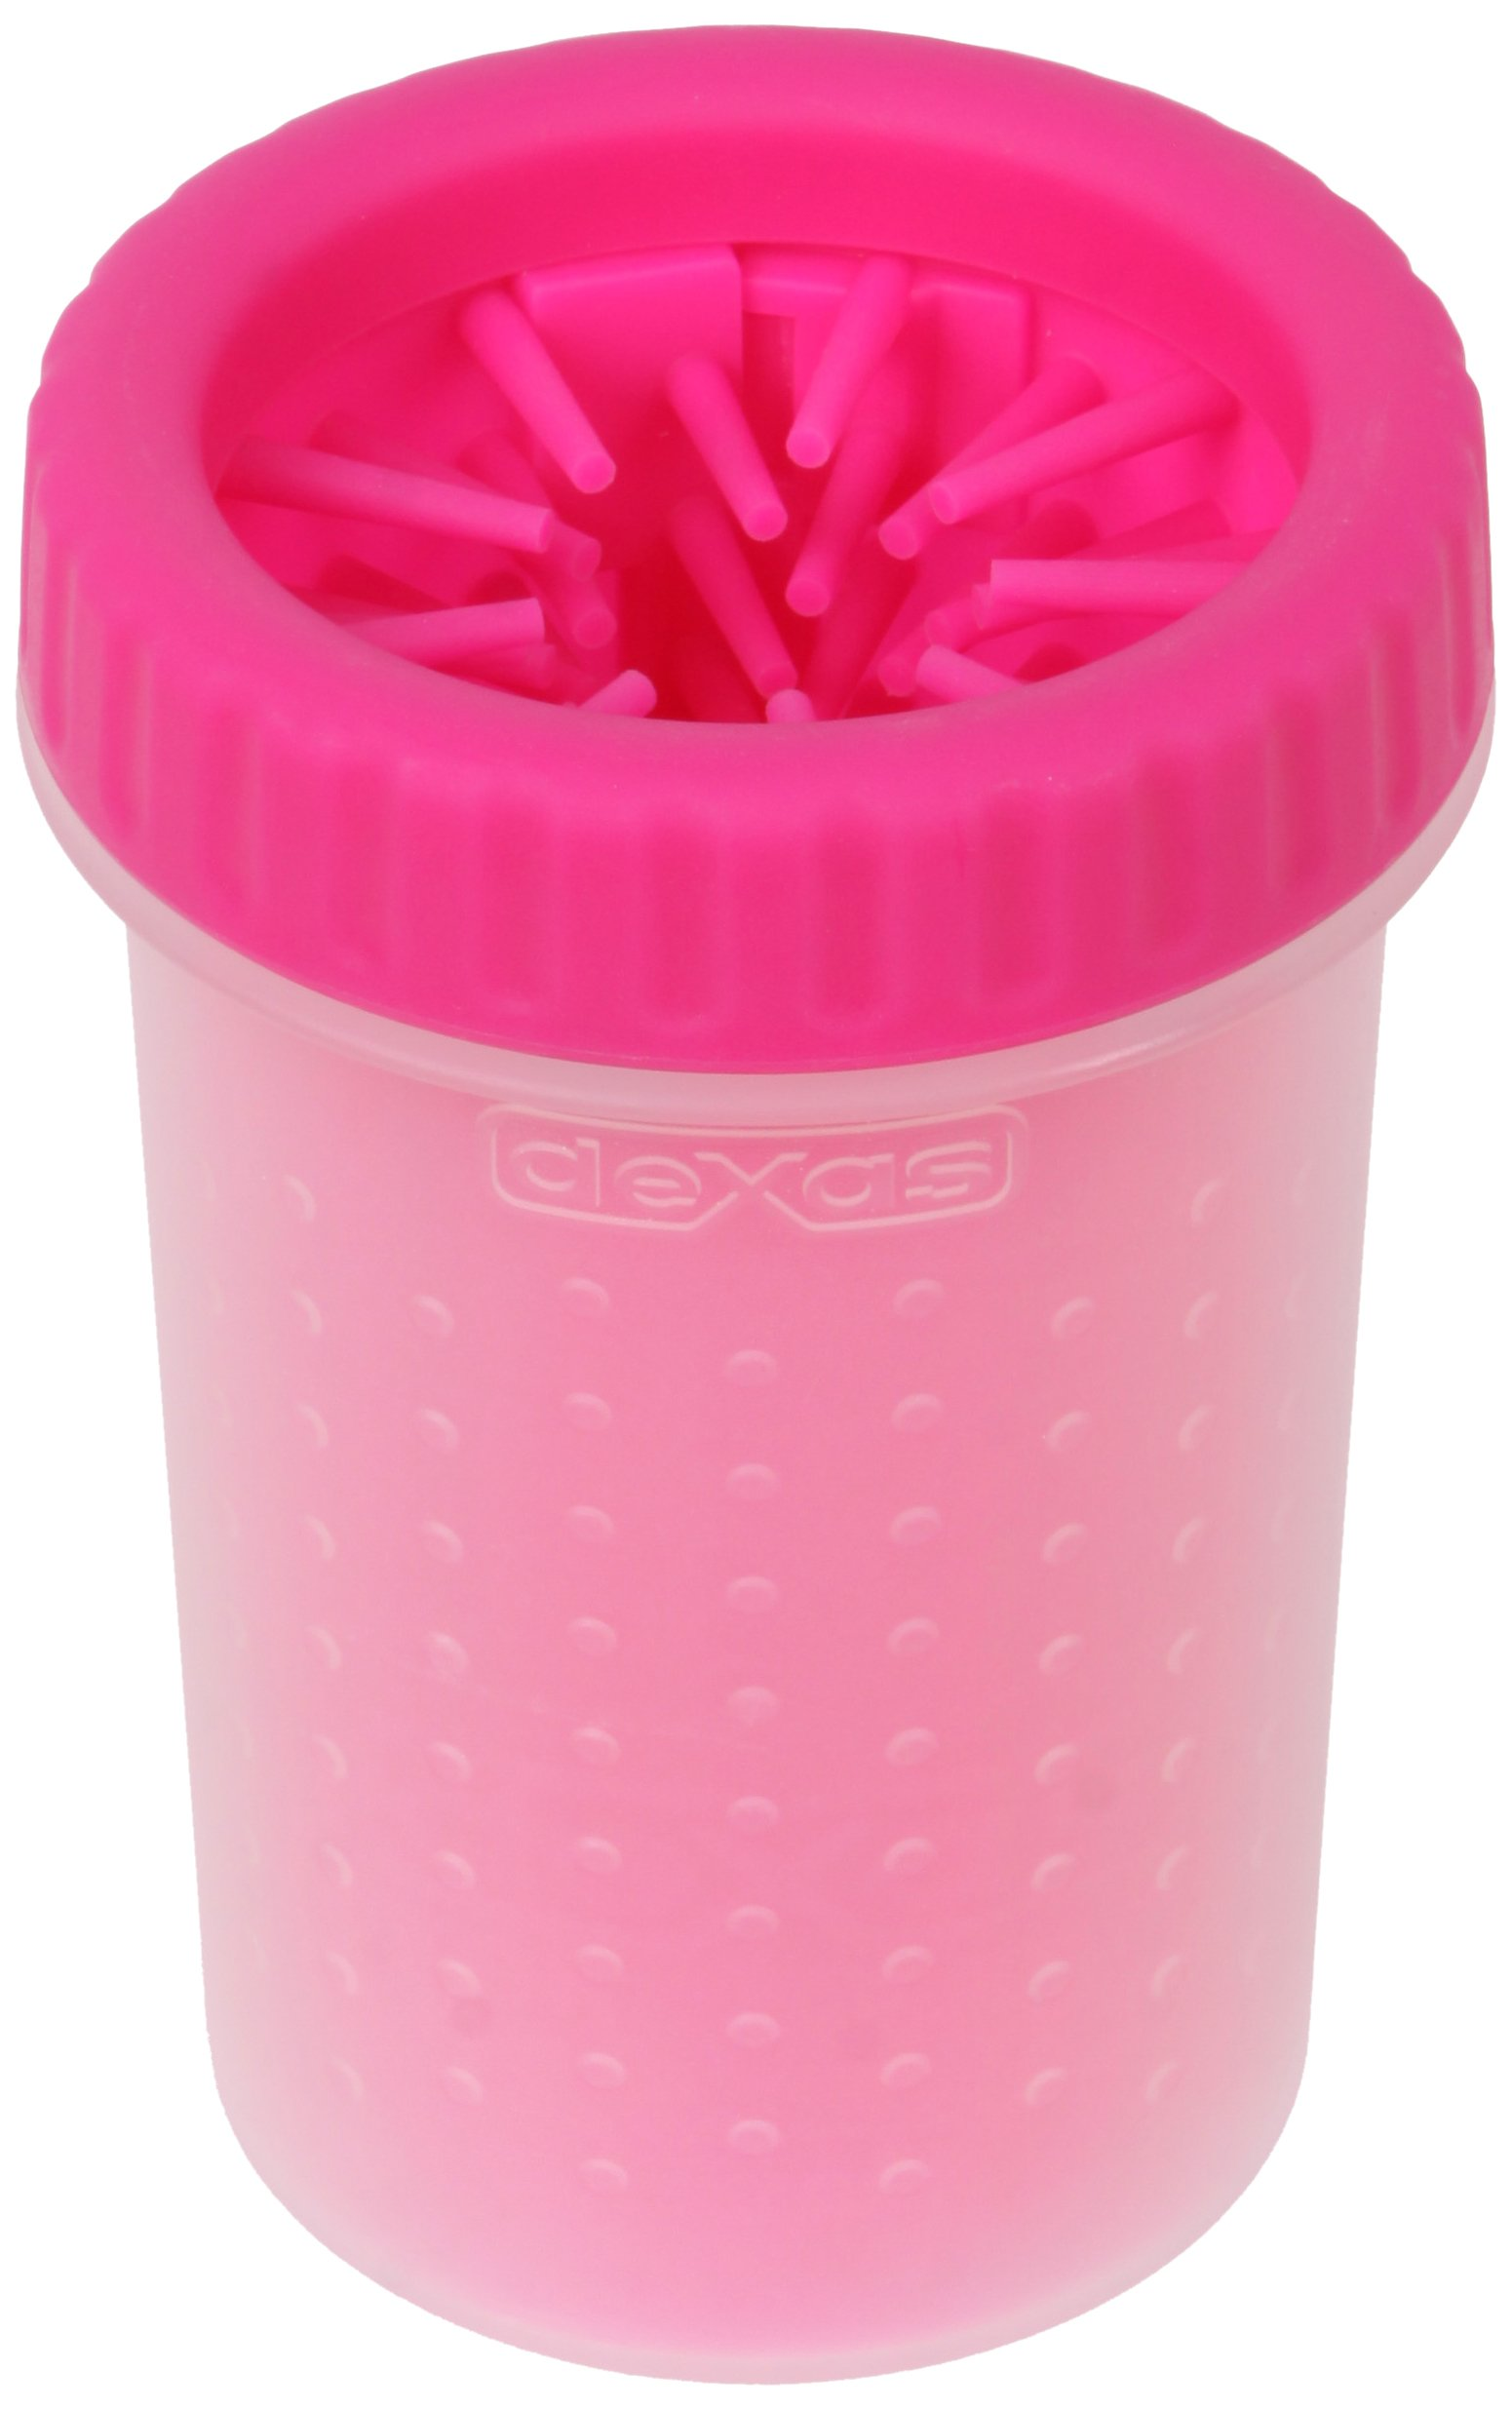 Dexas MudBuster Portable Dog Paw Cleaner, Medium, Pink